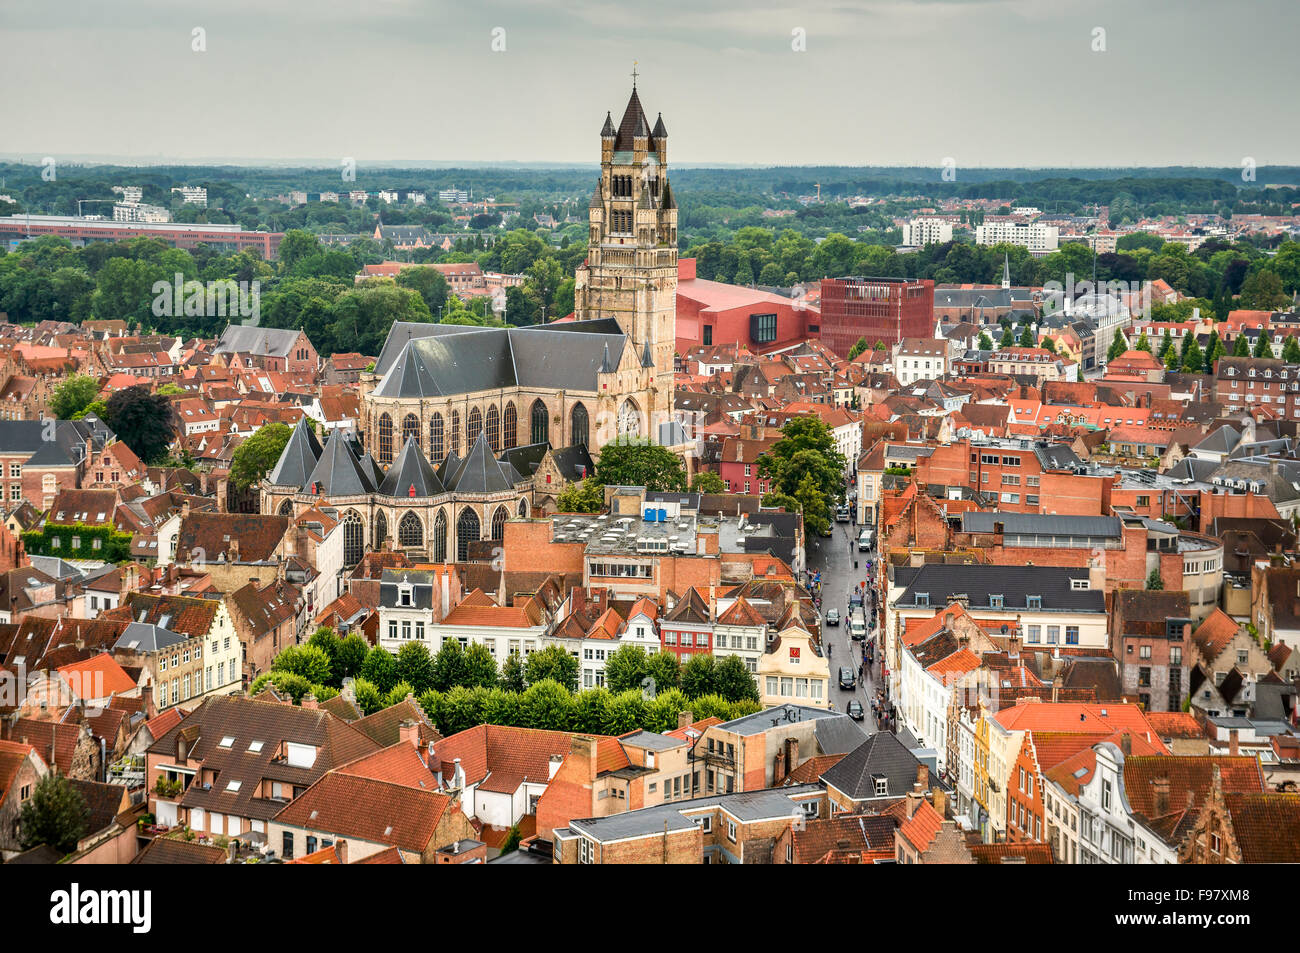 Bruges, Belgium. Top view of the Saint Salvator Cathedral in Brugge city of Flanders, belgian culture heritage. - Stock Image